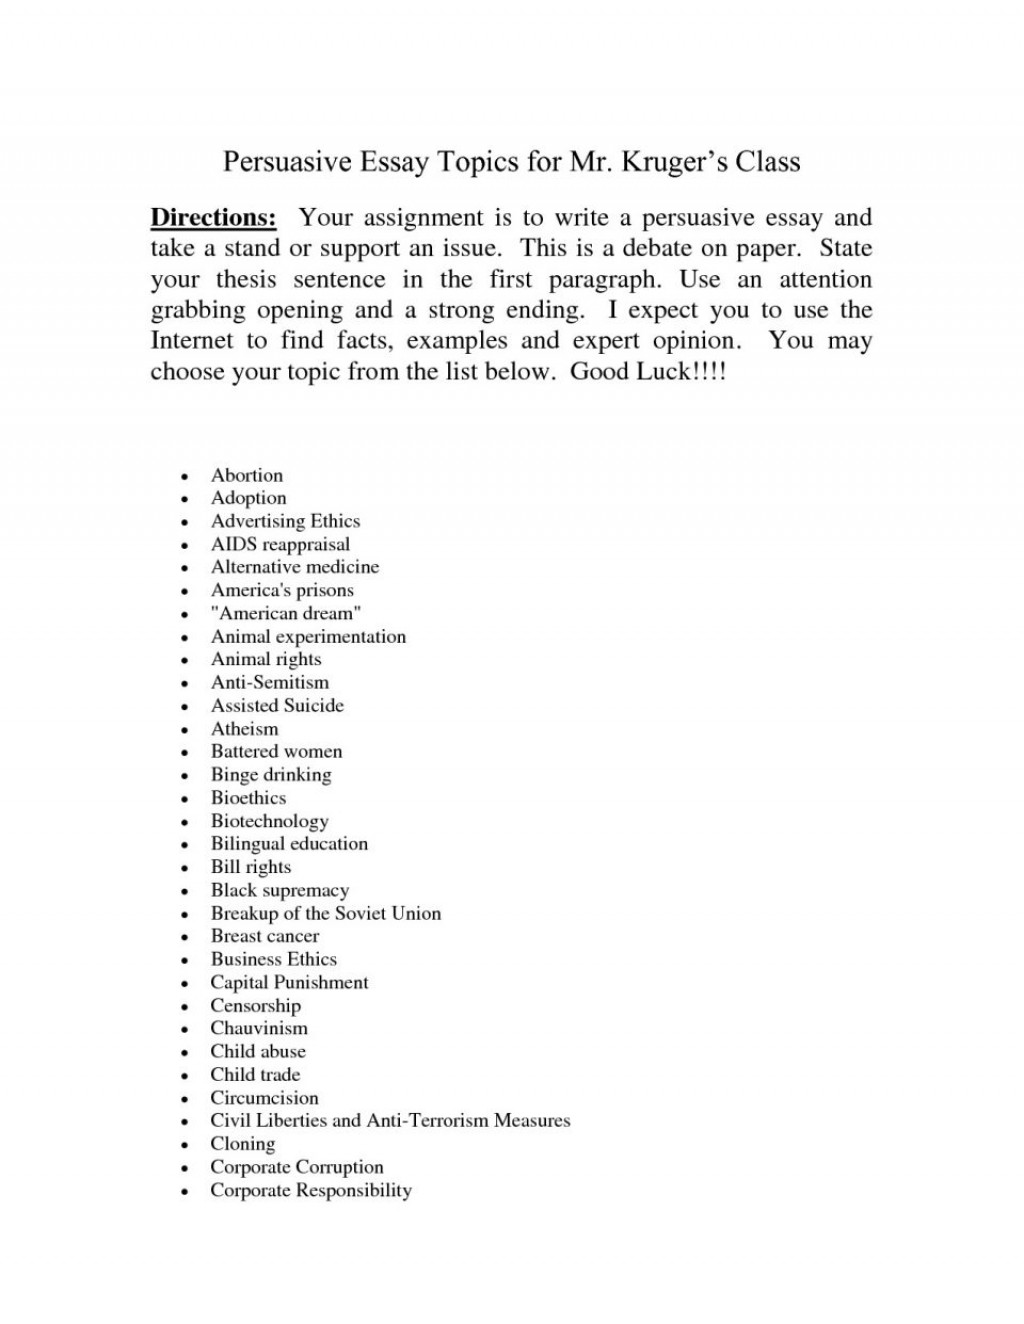 001 Research Paper Topic For Essay Barca Fontanacountryinn Within Good Persuasive Narrative Topics To Write Abo Easy About Personal Descriptive Informative Synthesis College 960x1242 Beautiful High School Students American History Business Large